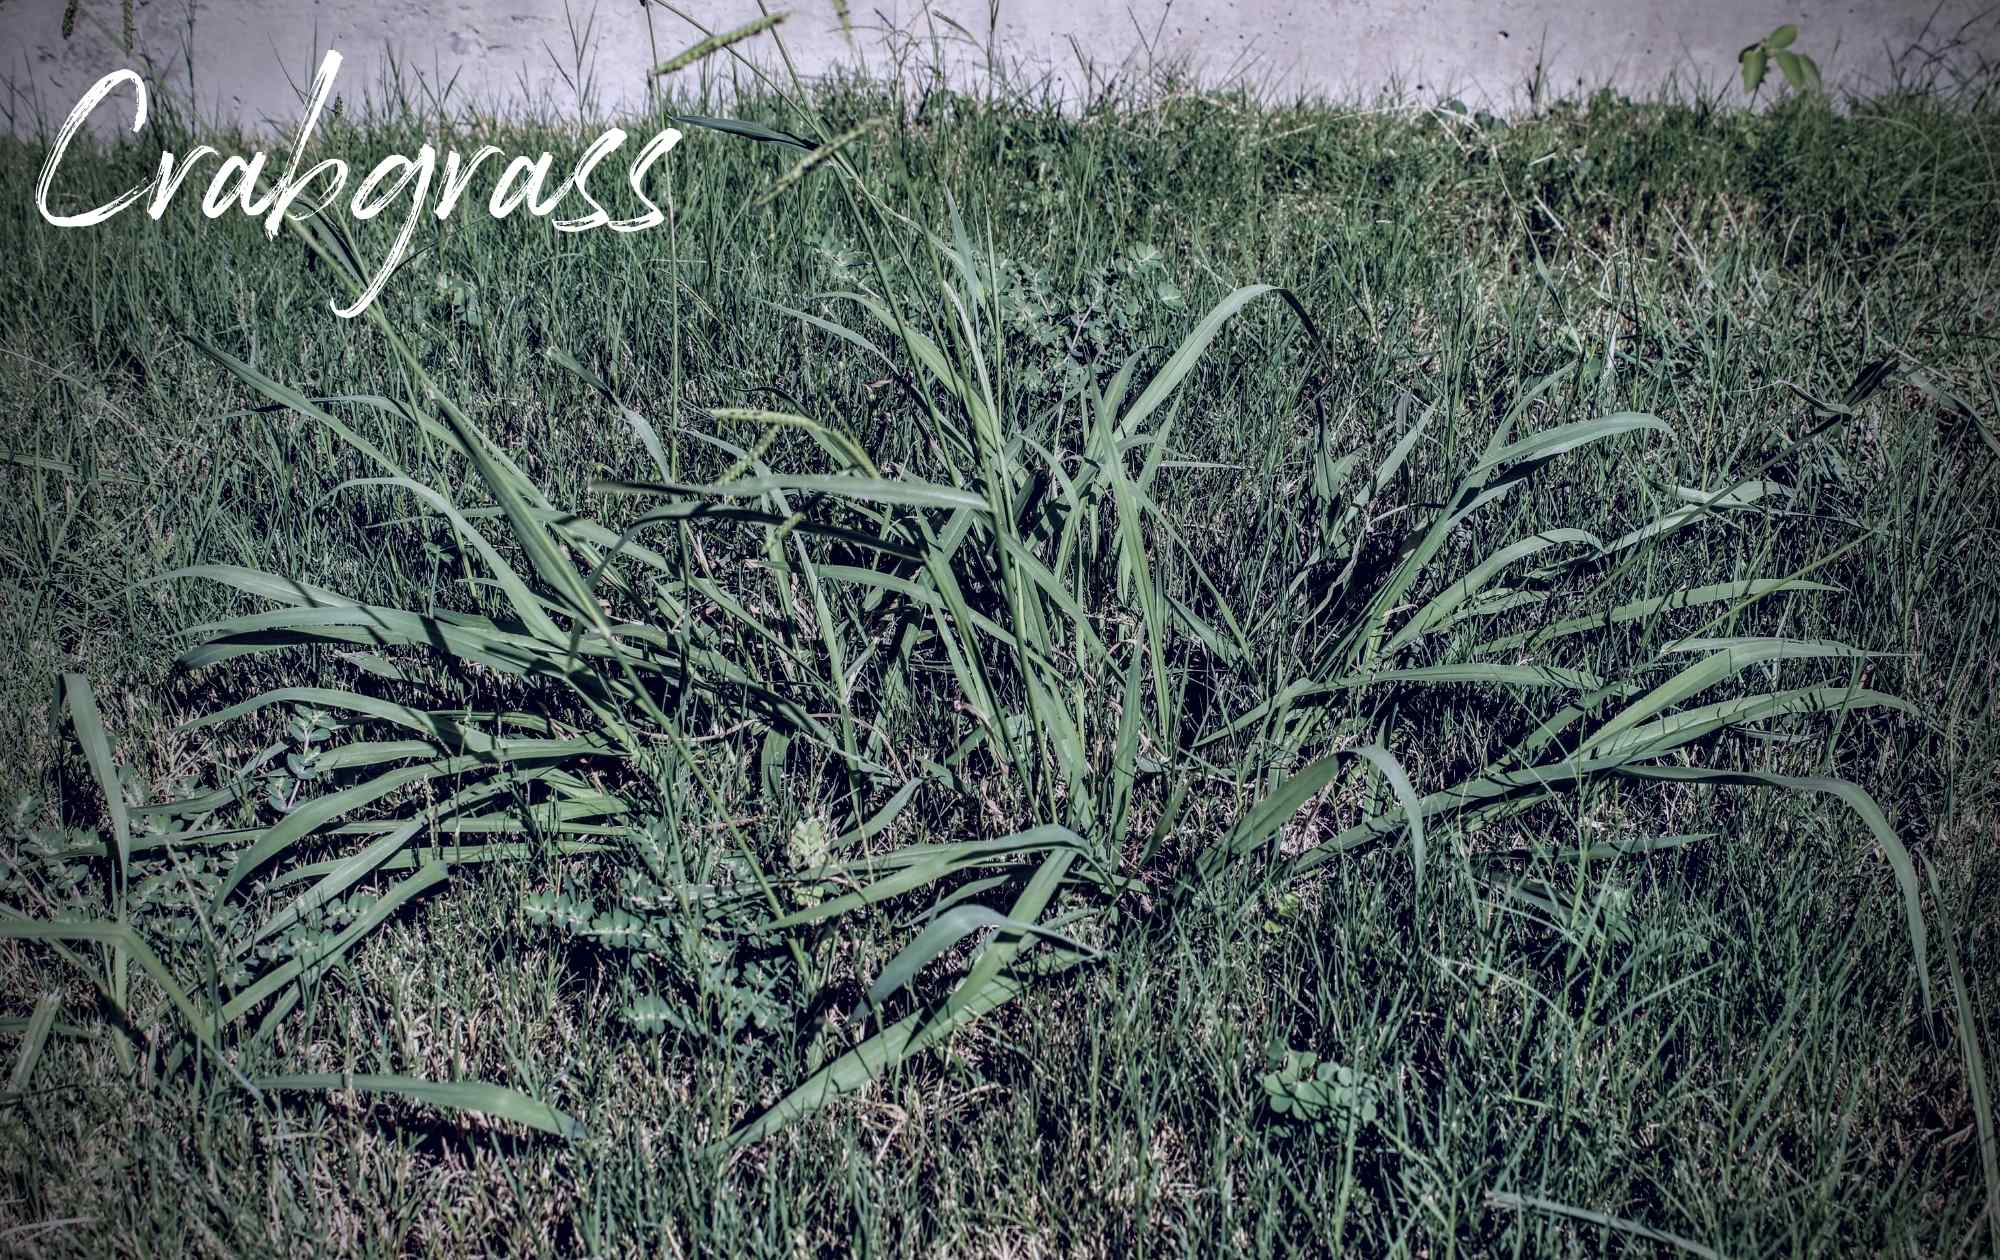 Crabgrass Haunting Landscape Weed Image